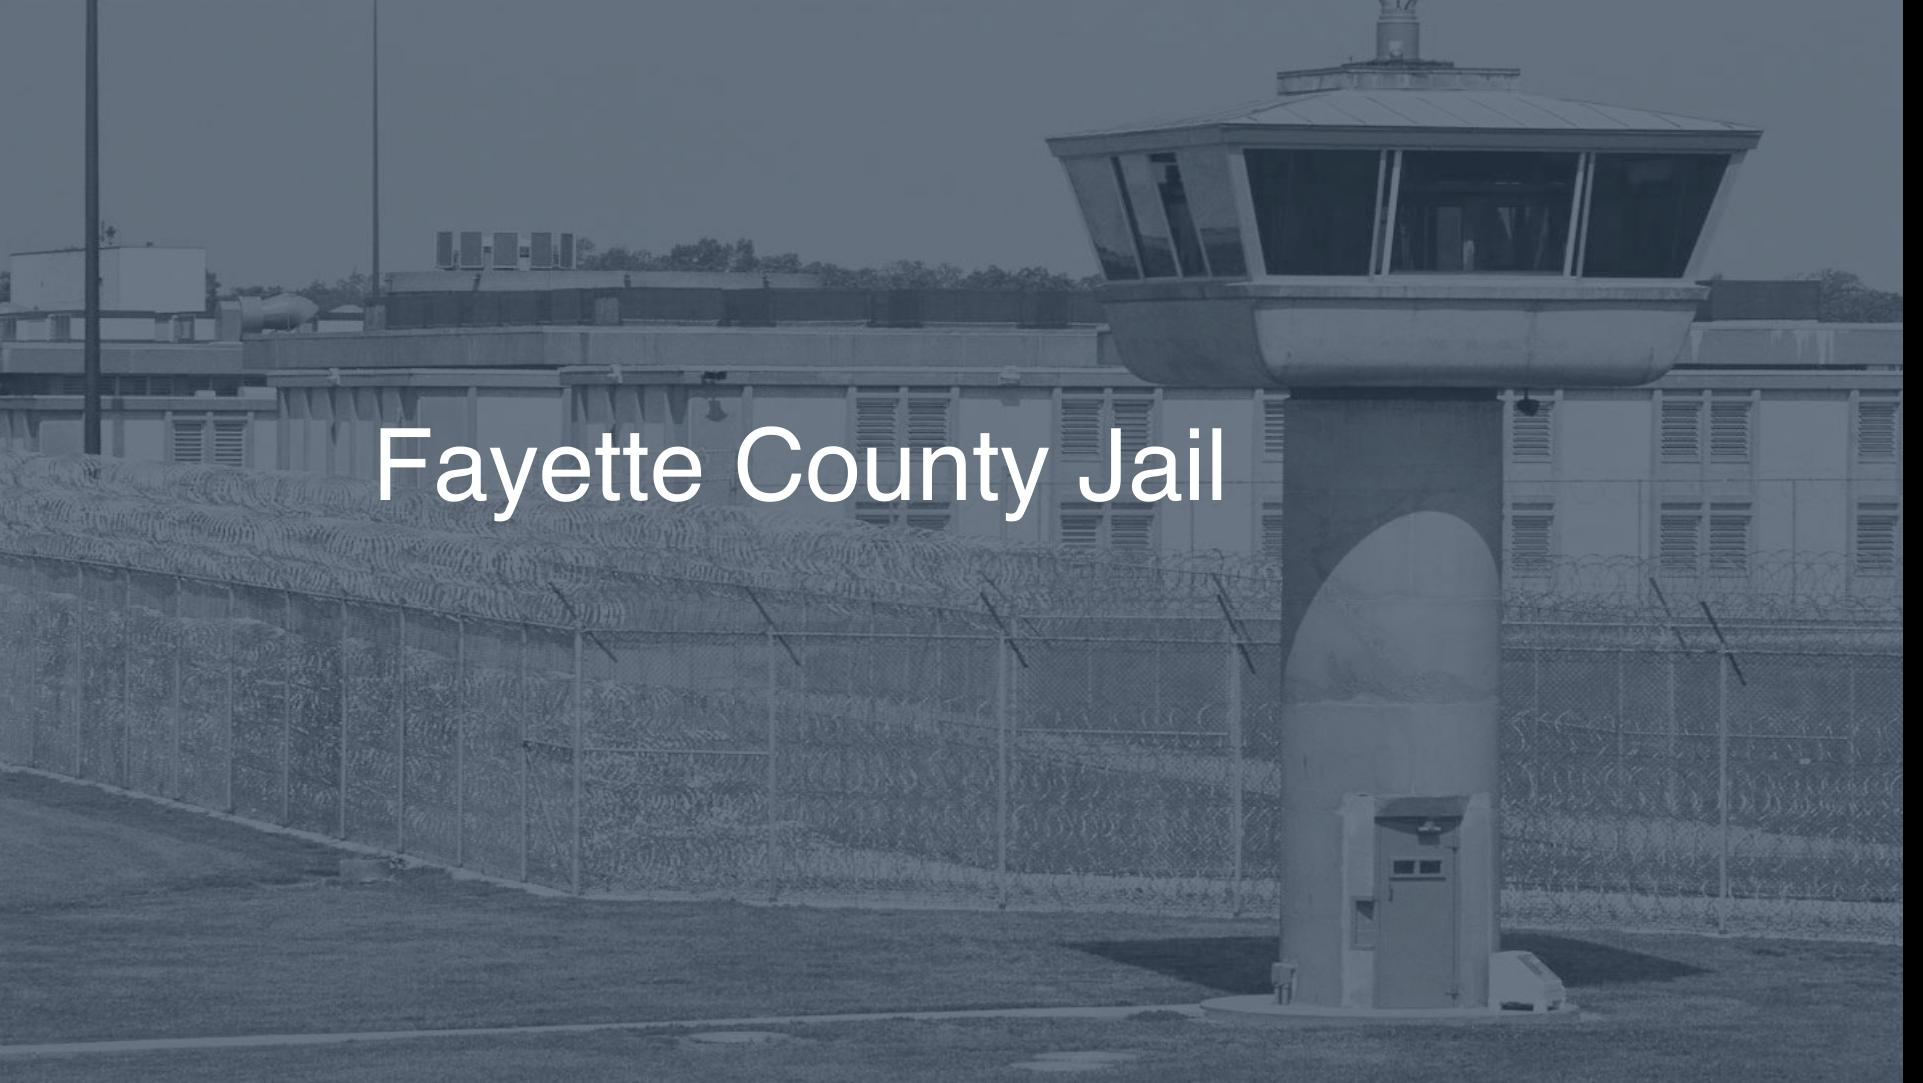 Fayette County Jail correctional facility picture